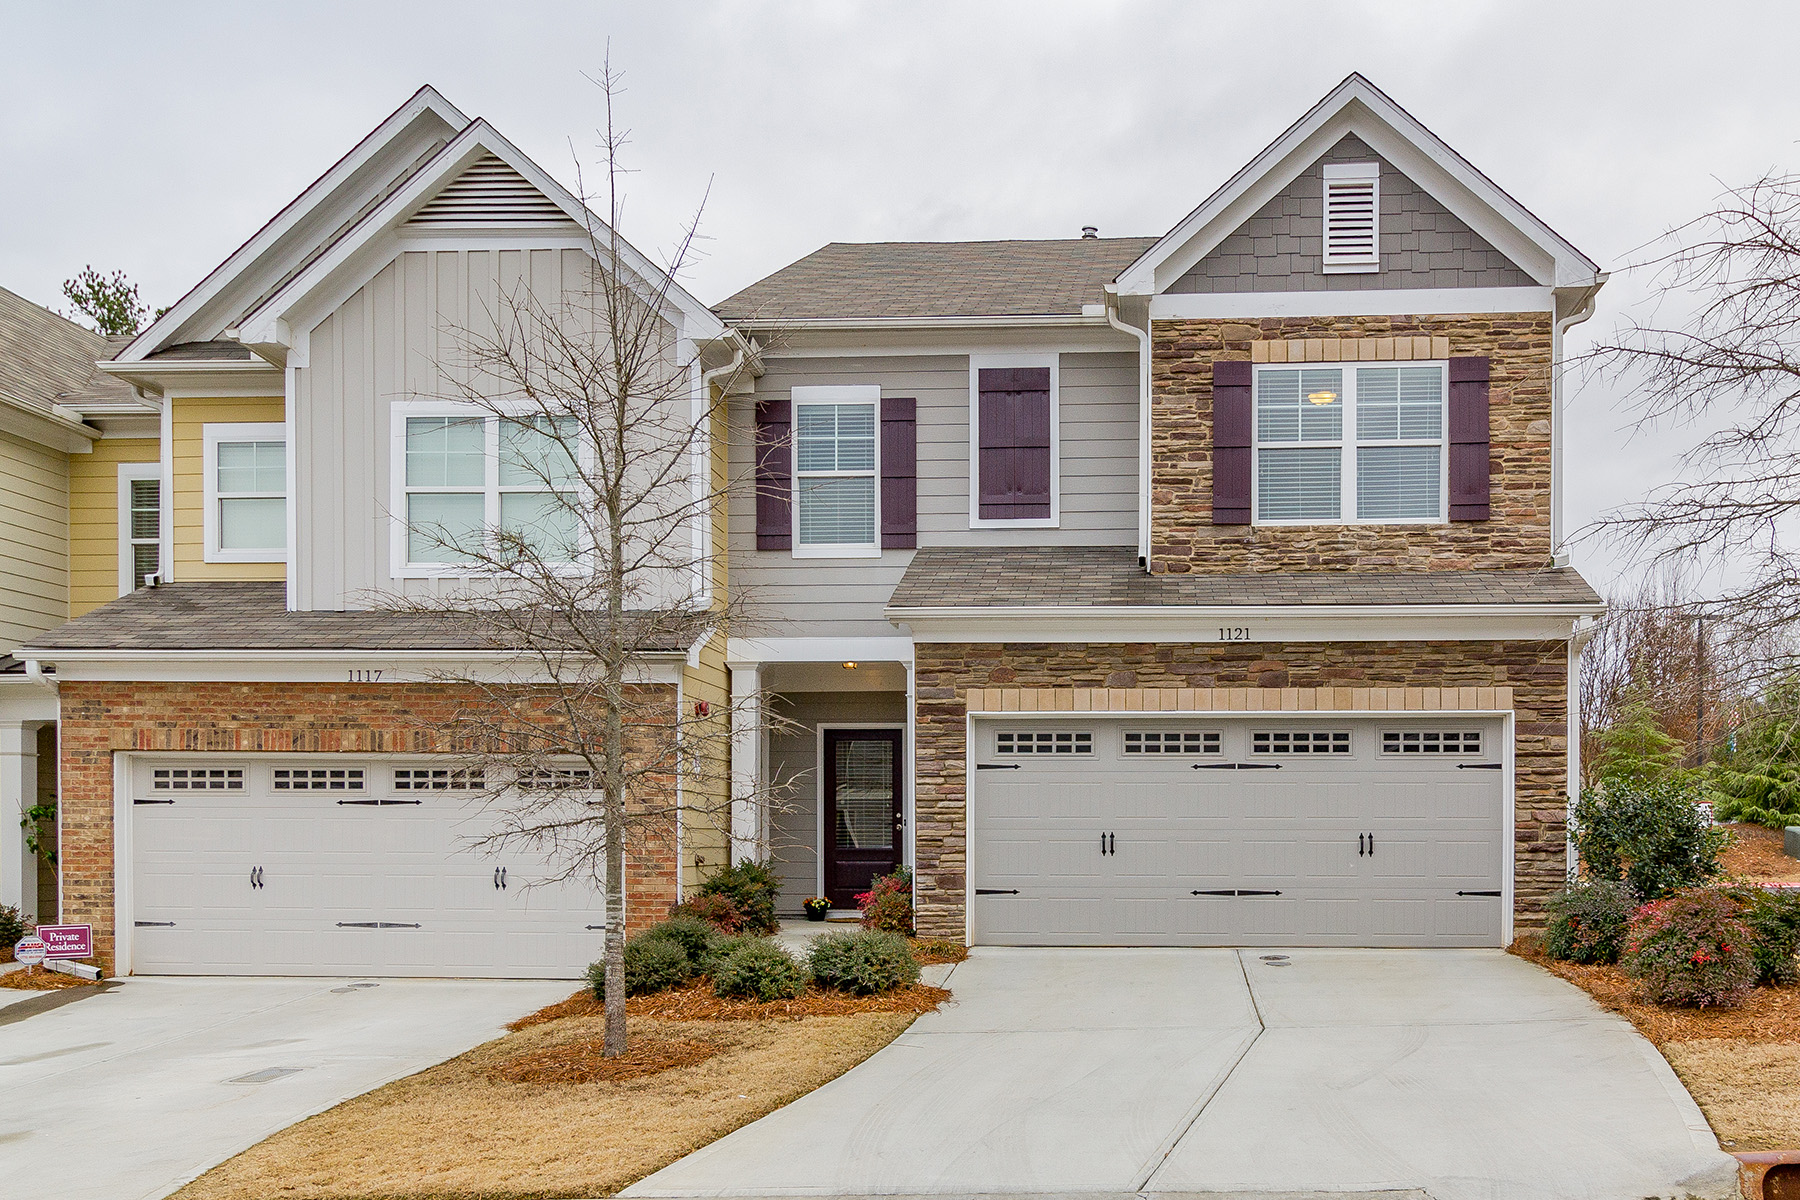 Townhouse for Sale at Charming Smyrna End Unit Townhome 1121 Dayton Drive Smyrna, Georgia 30082 United States